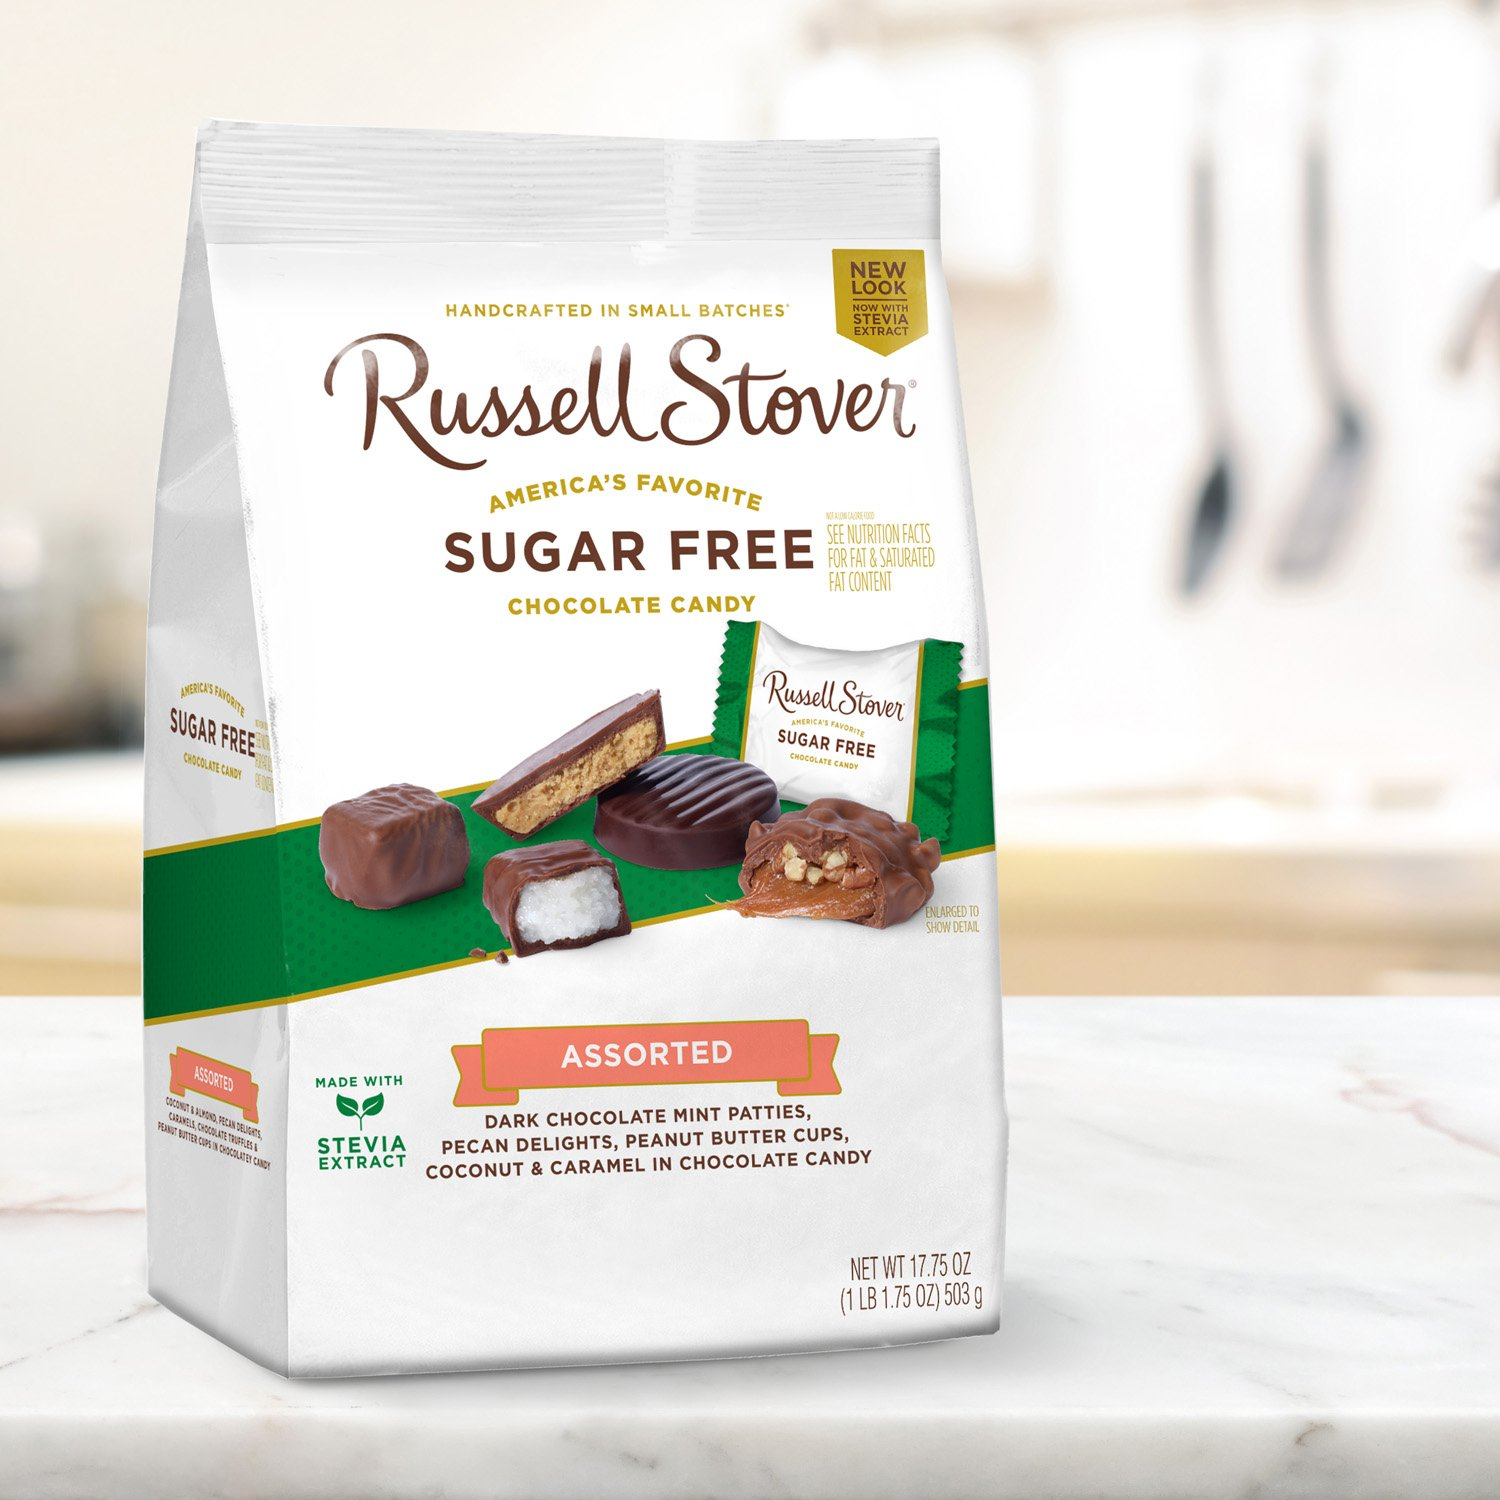 Russell Stover Sugar Free Assortment, 17.85 Ounce Bag, 4 Count by Russell Stover (Image #5)